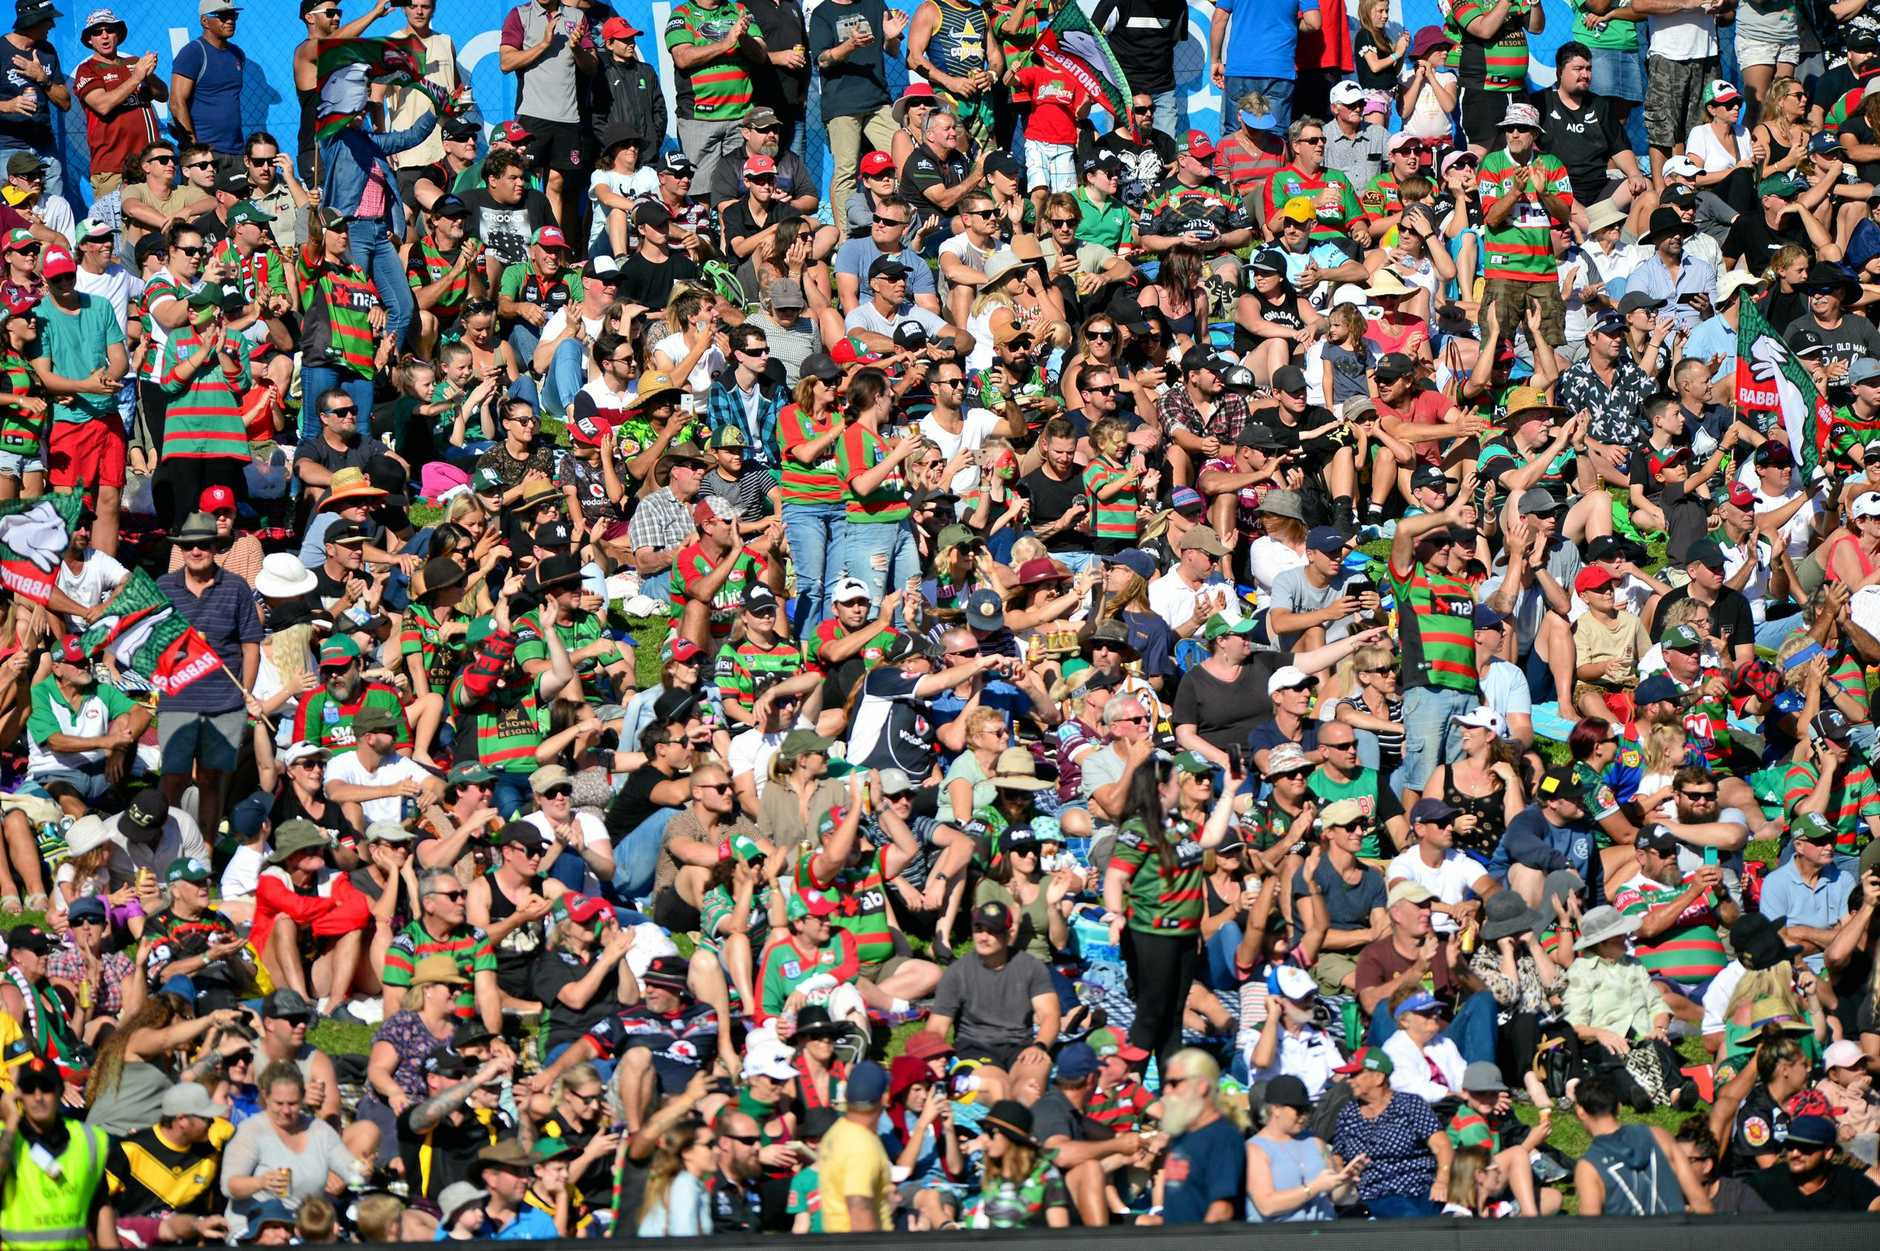 NRL action at Sunshine Coast Stadium between New Zealand Warriors and the South Sydney Rabbitohs in April. A record crowd of 11,912.